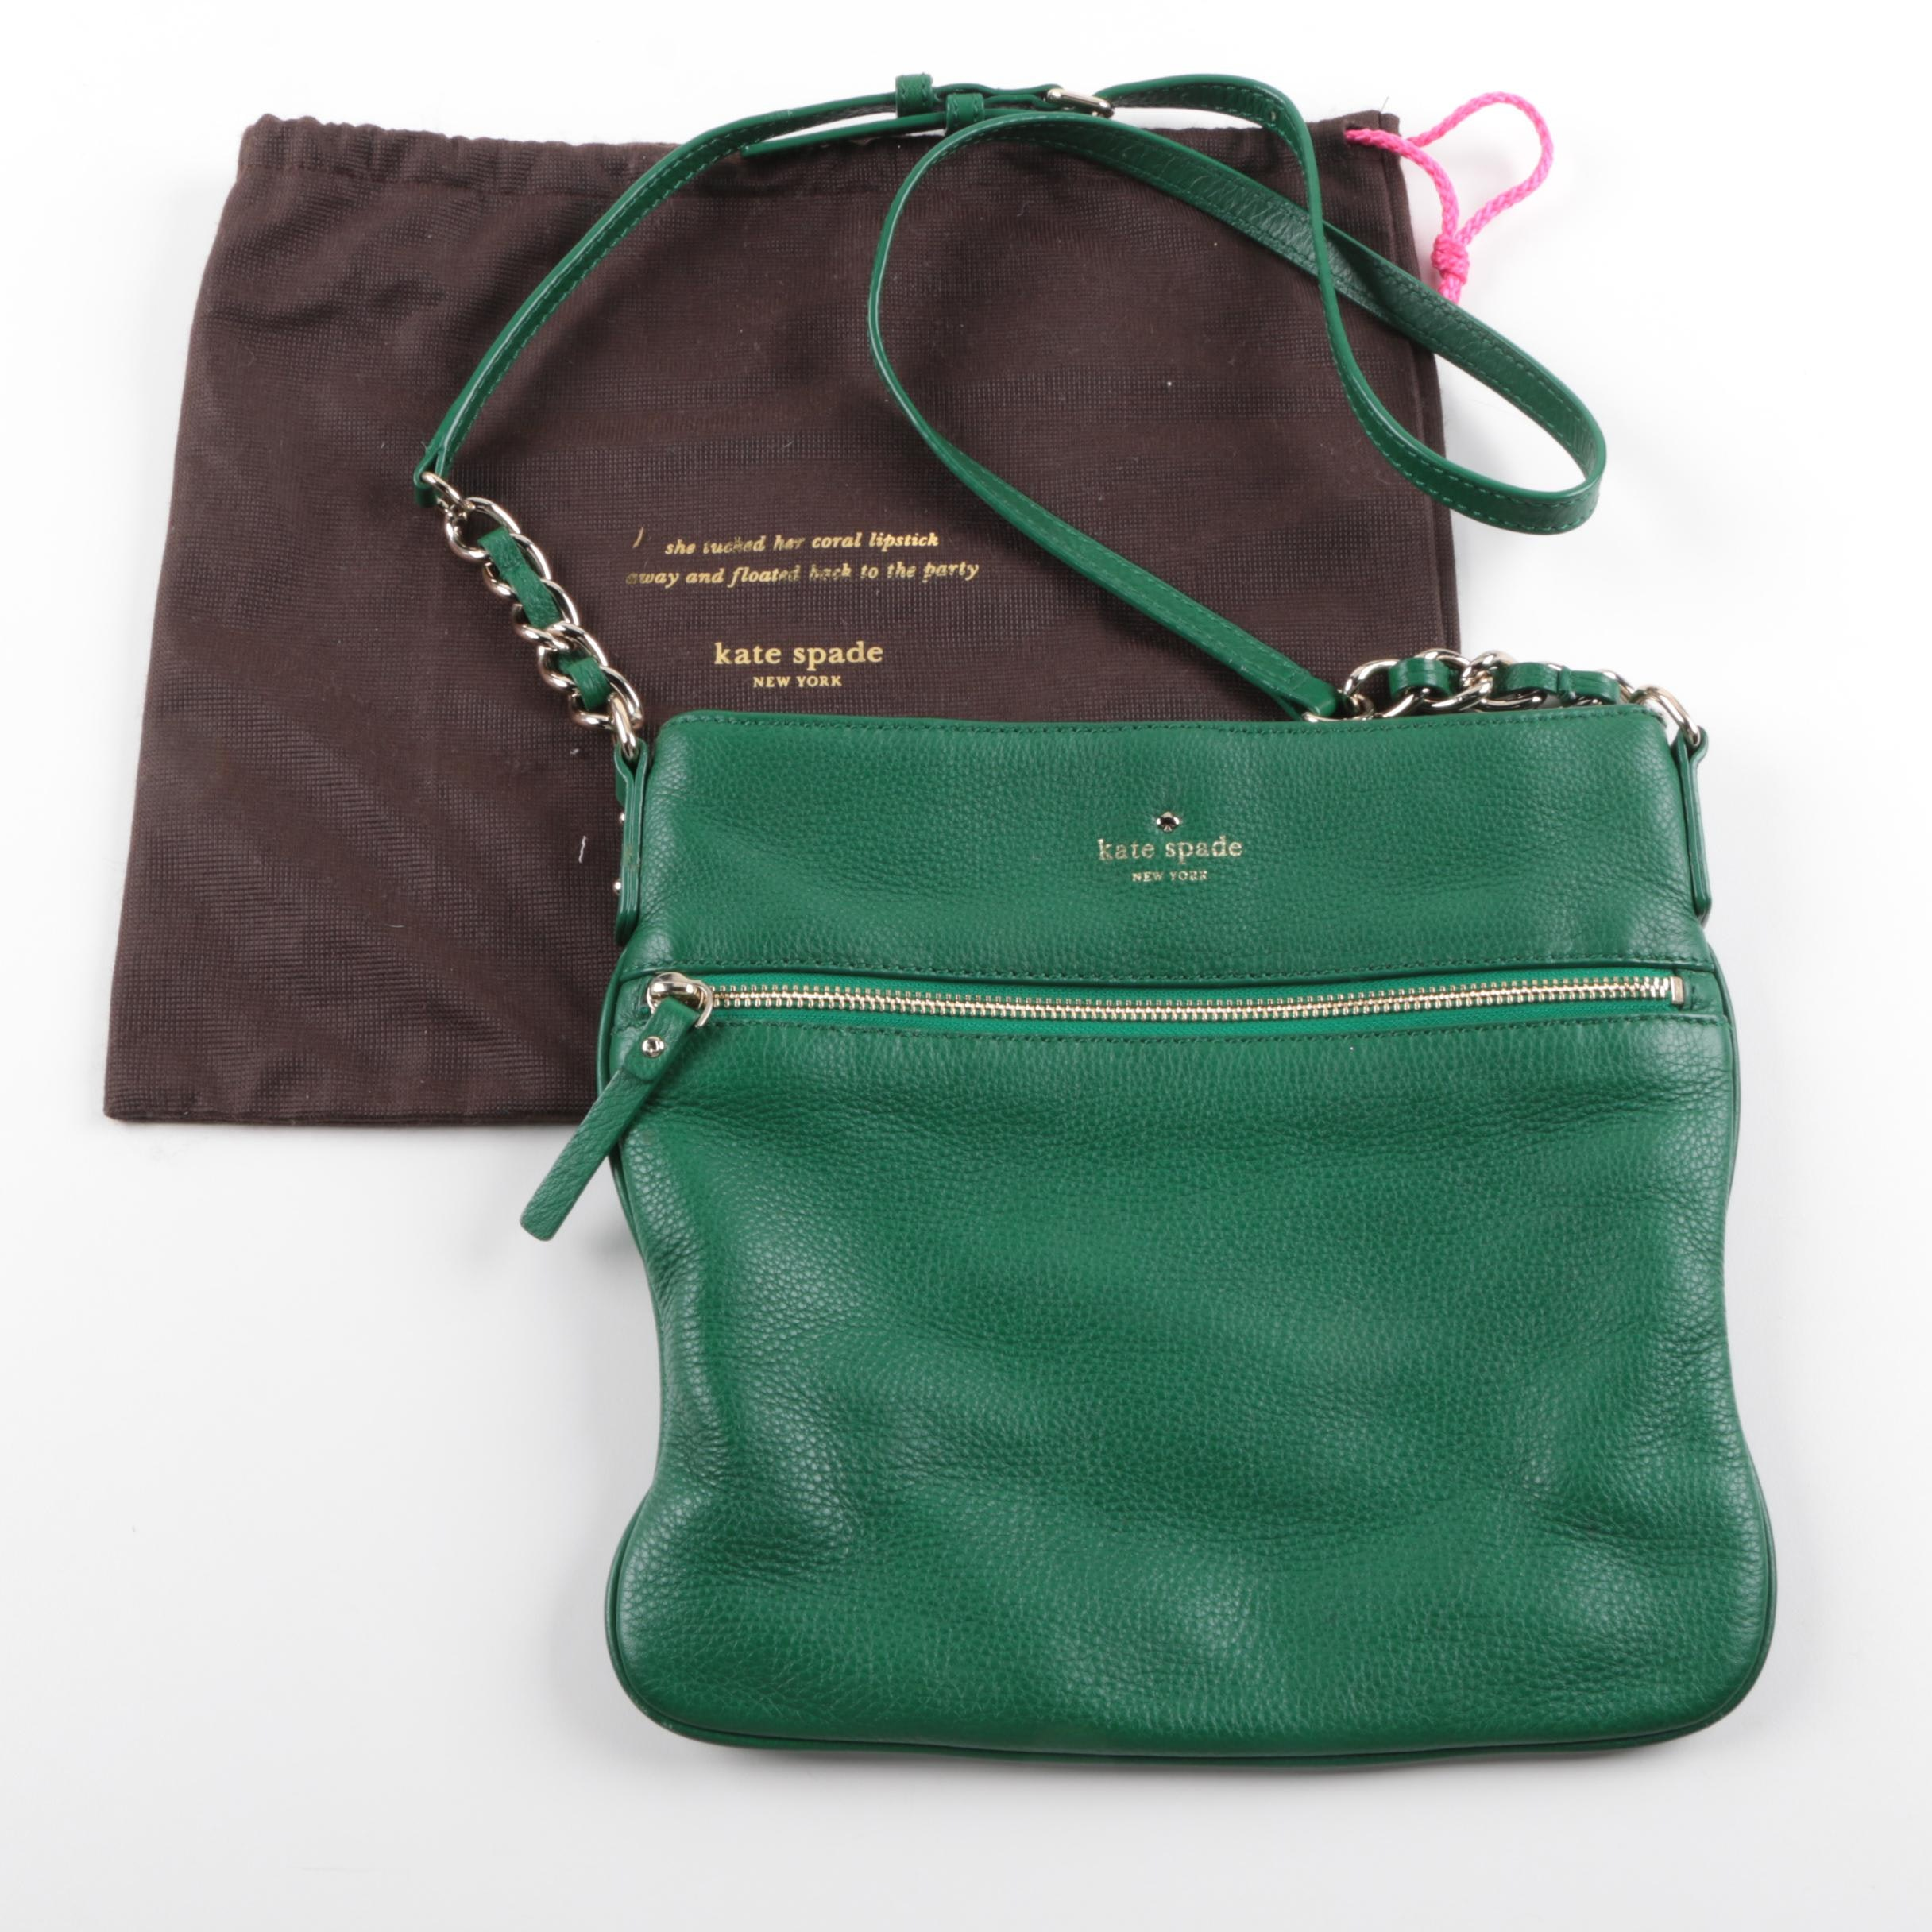 Kate Spade Green Leather Crossbody Bag